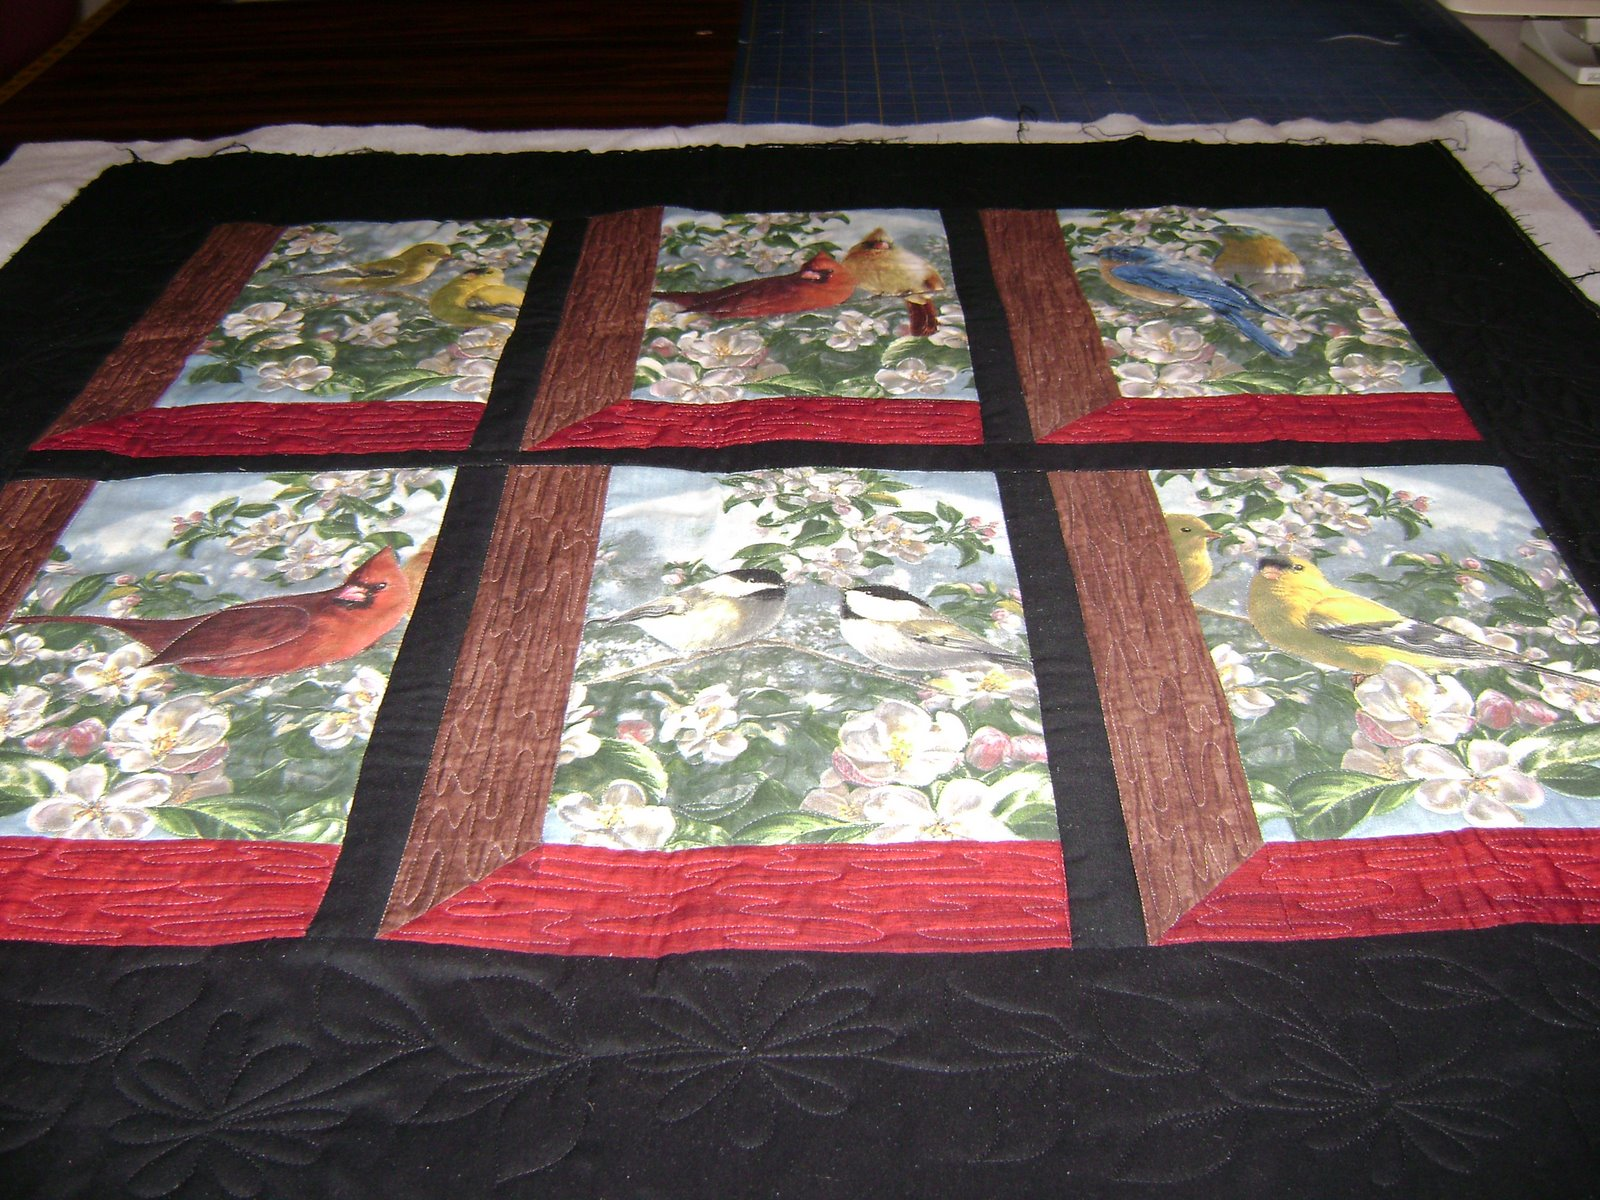 Window frame quilt | Anita's quilts and quilting : picture frame quilt - Adamdwight.com